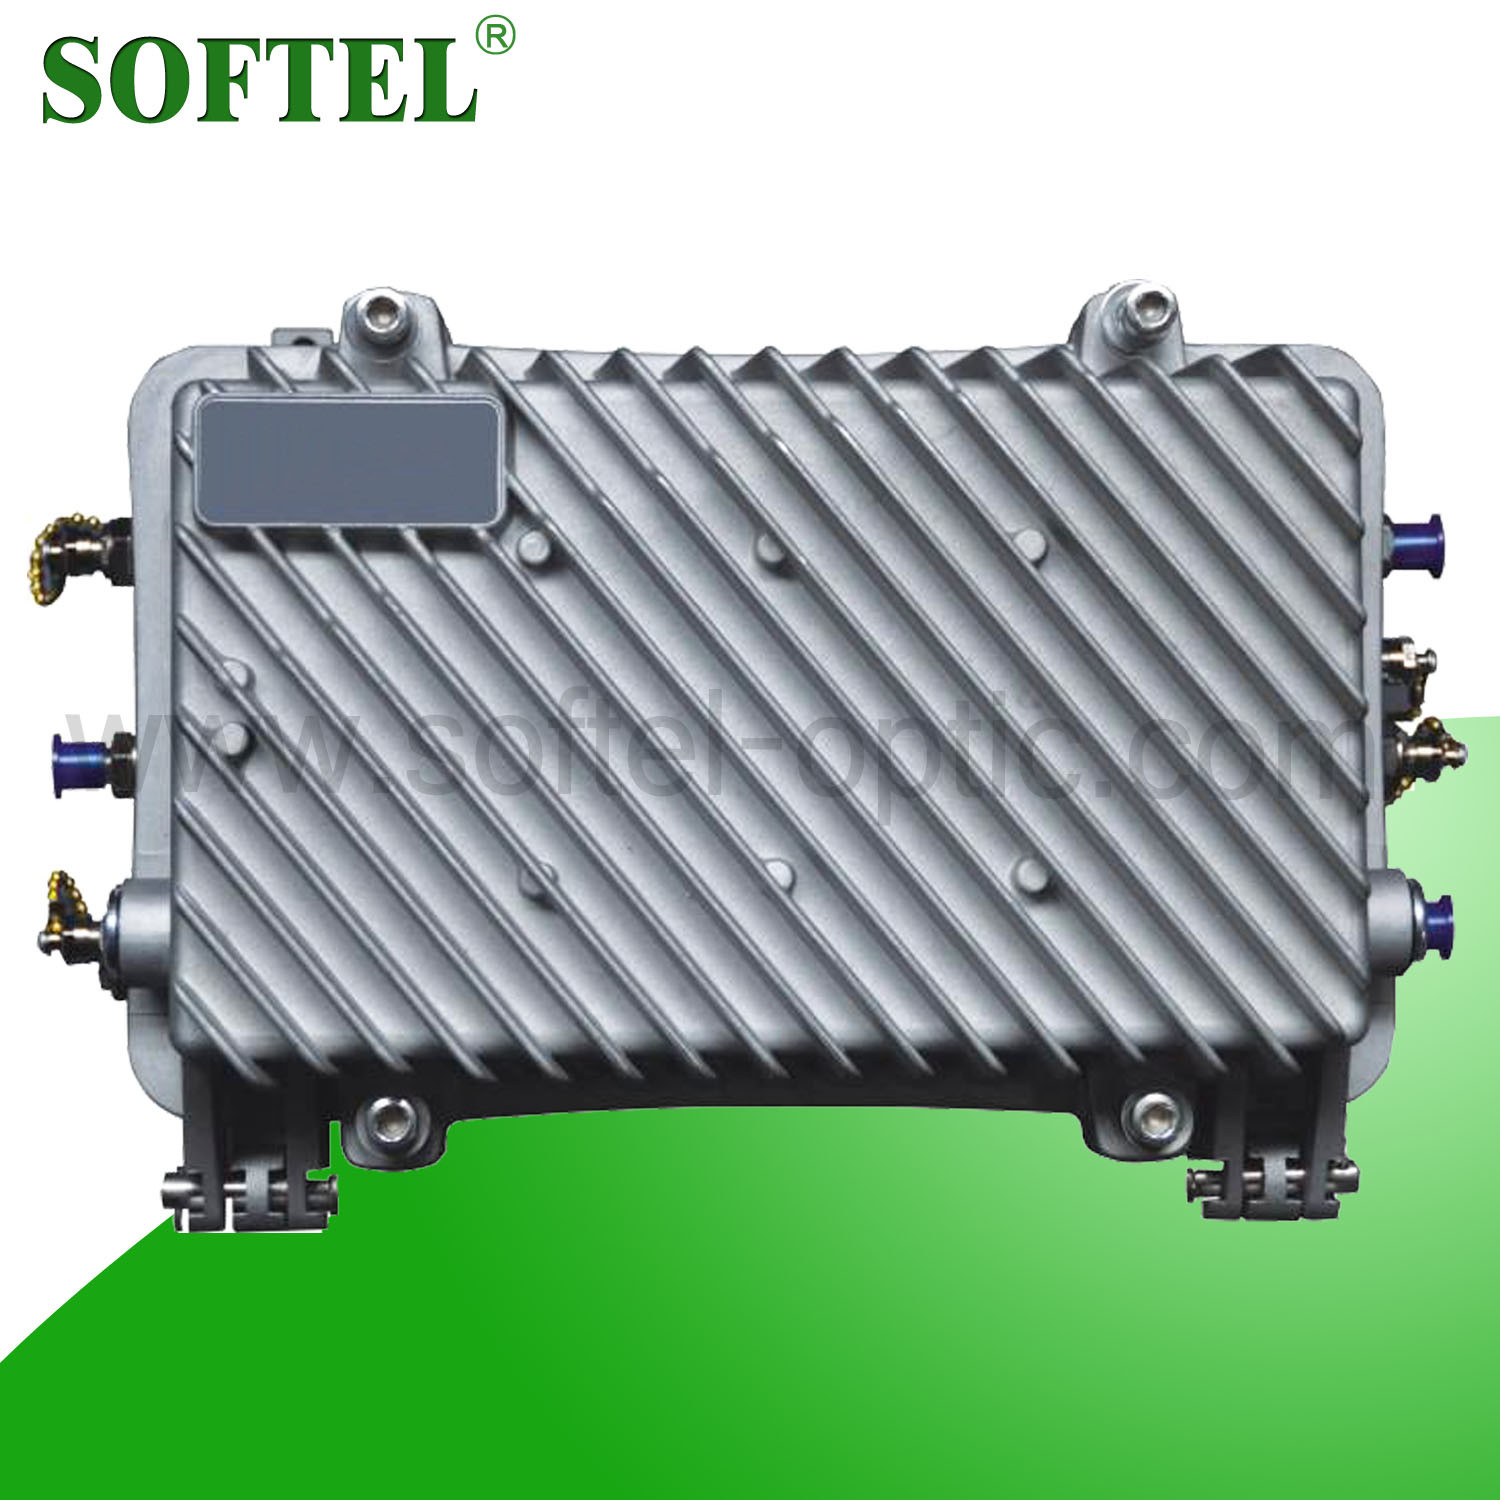 SA1022R 2 Output Waterproof Aluminum Hosing CATV Trunk Amplifier with Return Path 5-43/65MHz